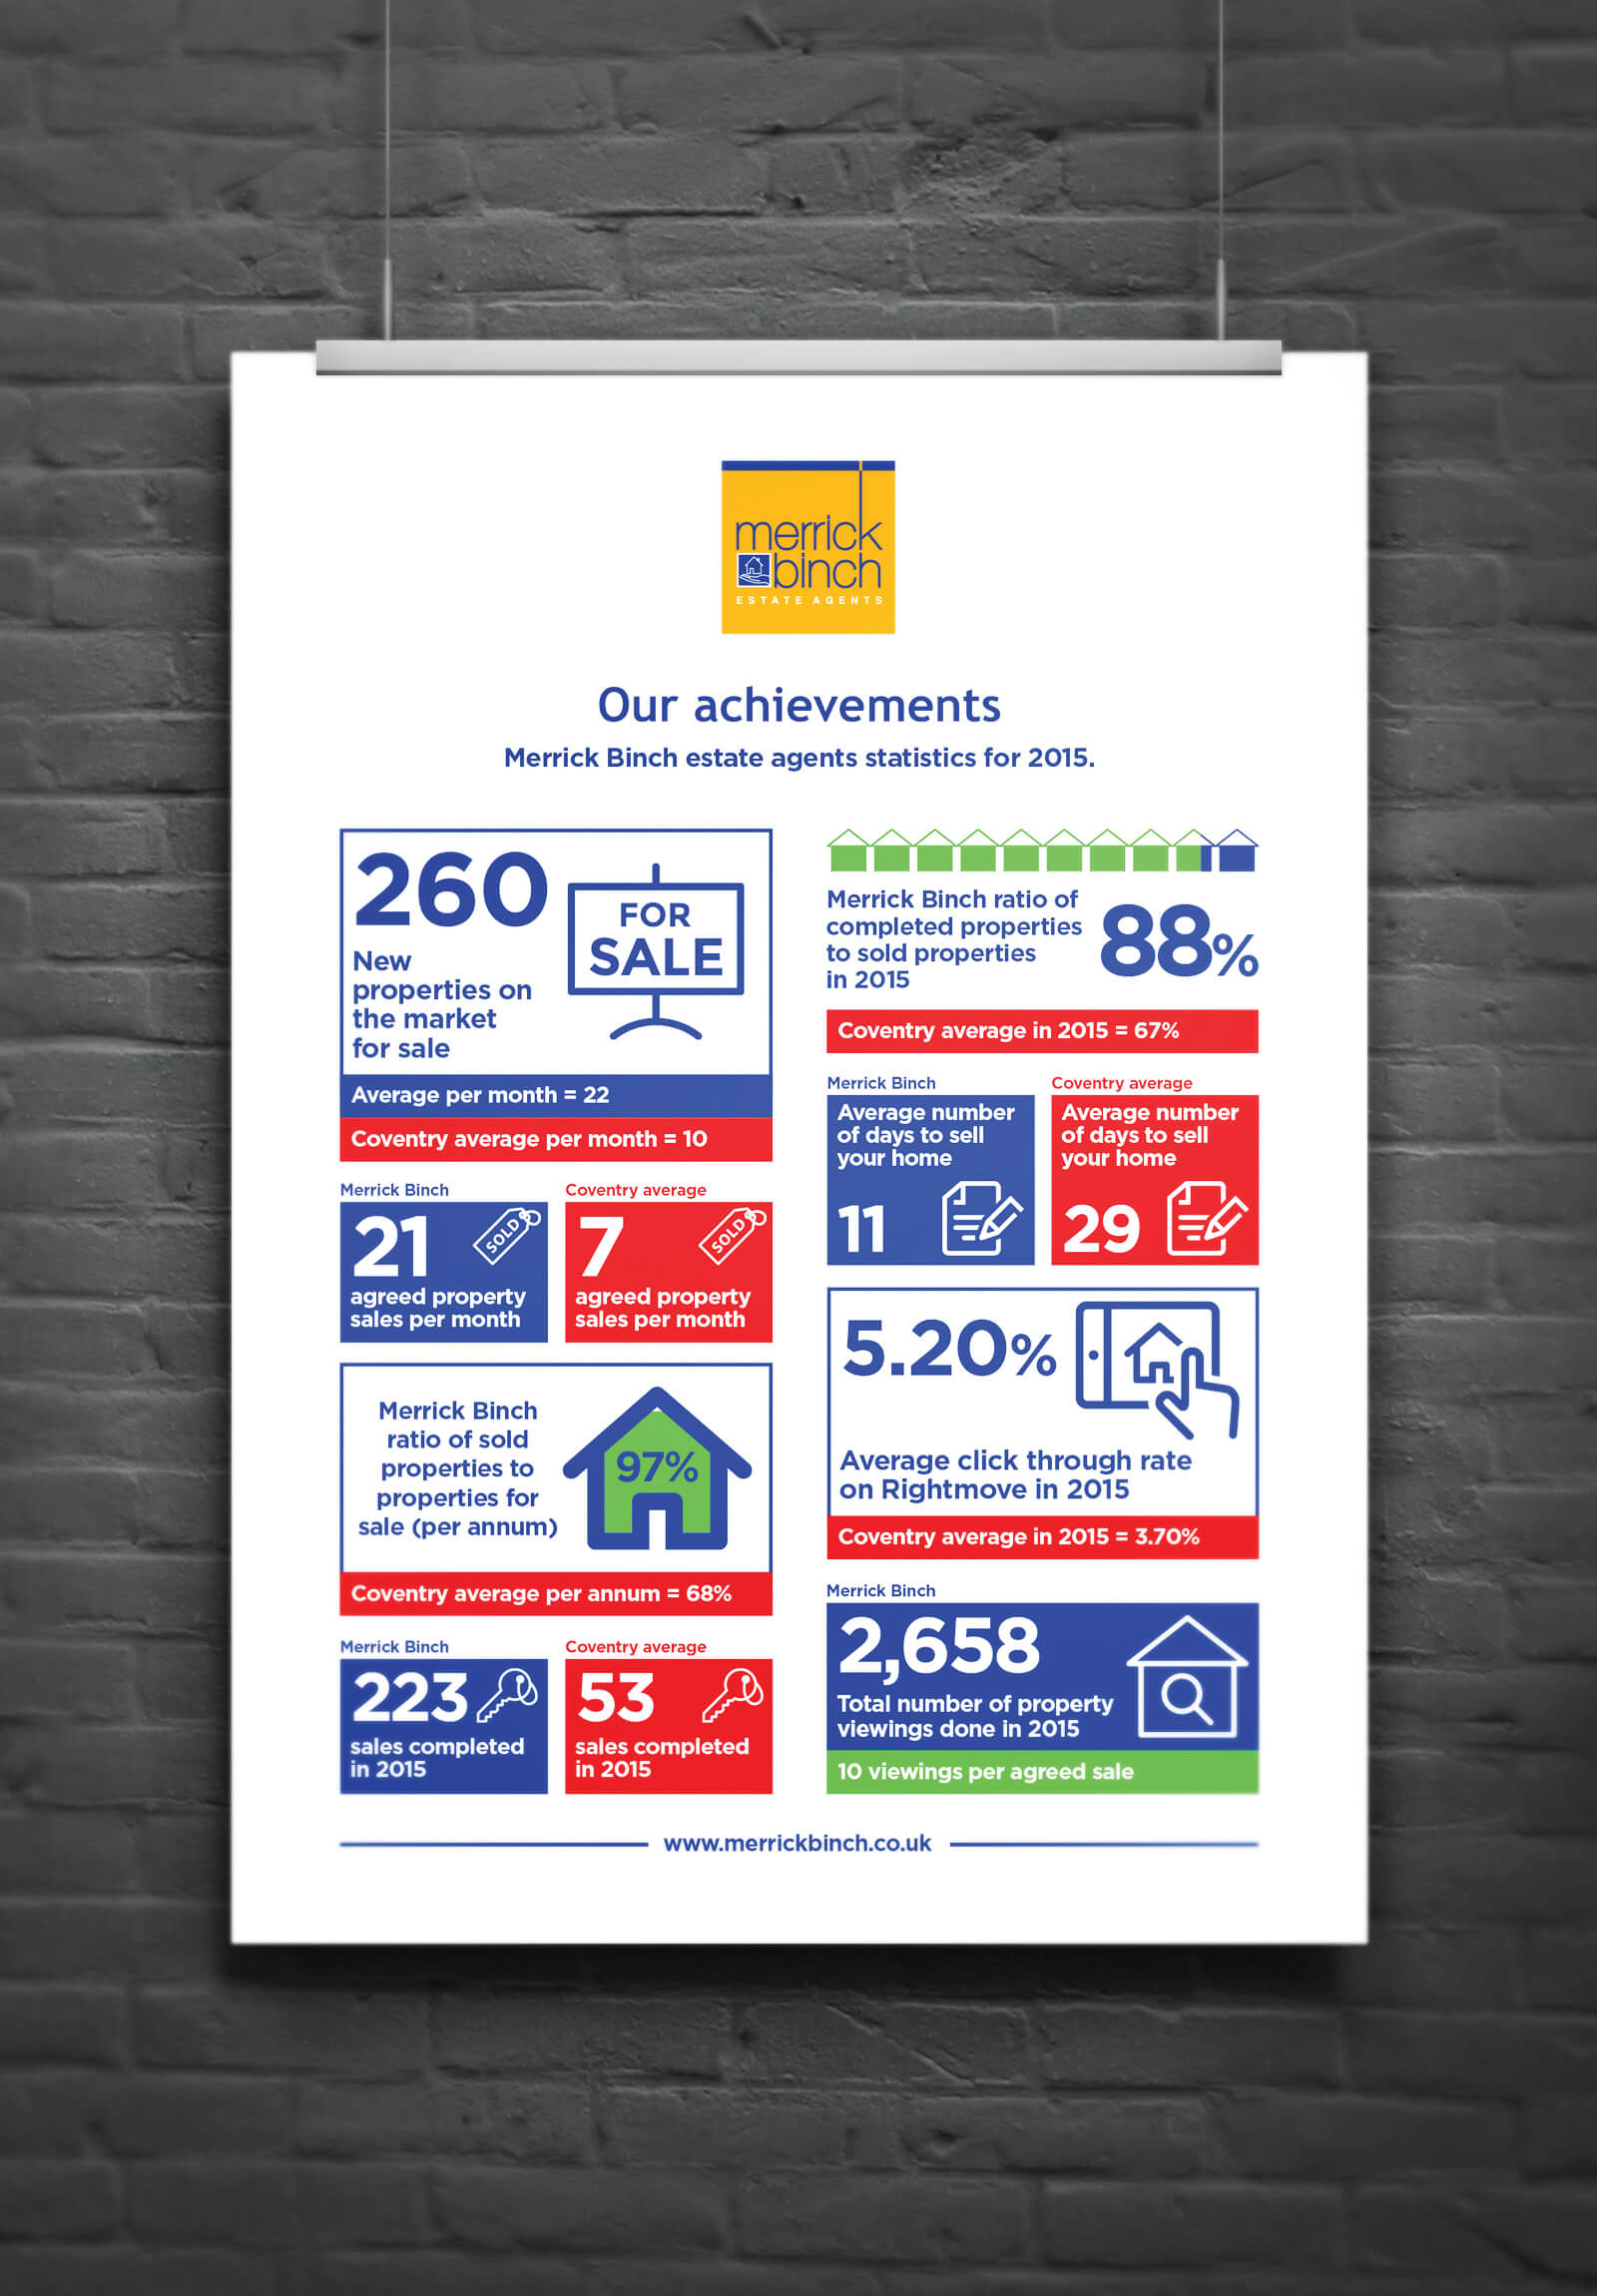 Added value: design of an infographic of achievements for Merrick Binch, Coventry.